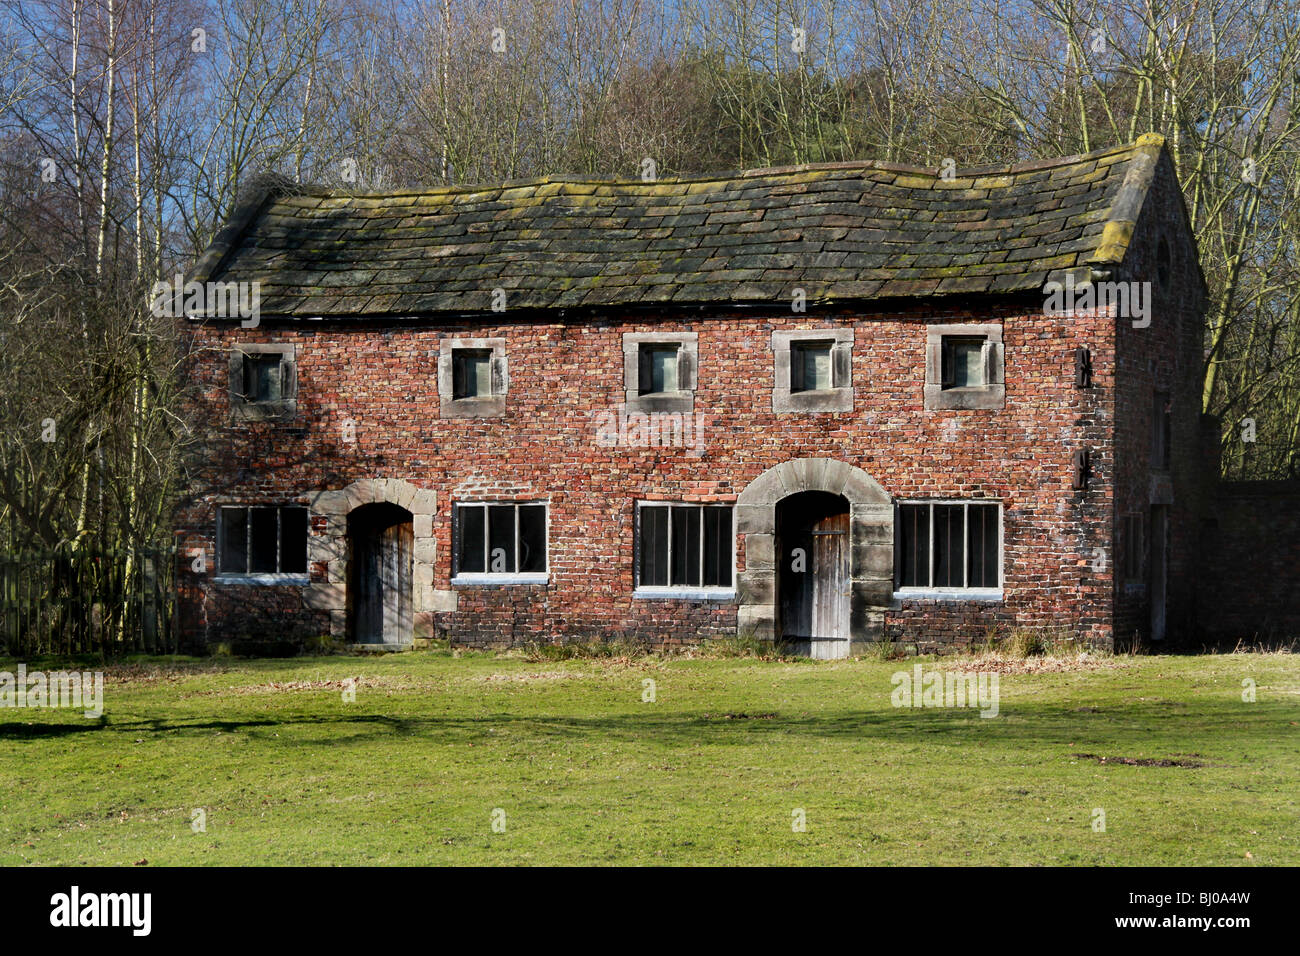 dunham massey  deer park, the old barn cottages in the grounds - Stock Image